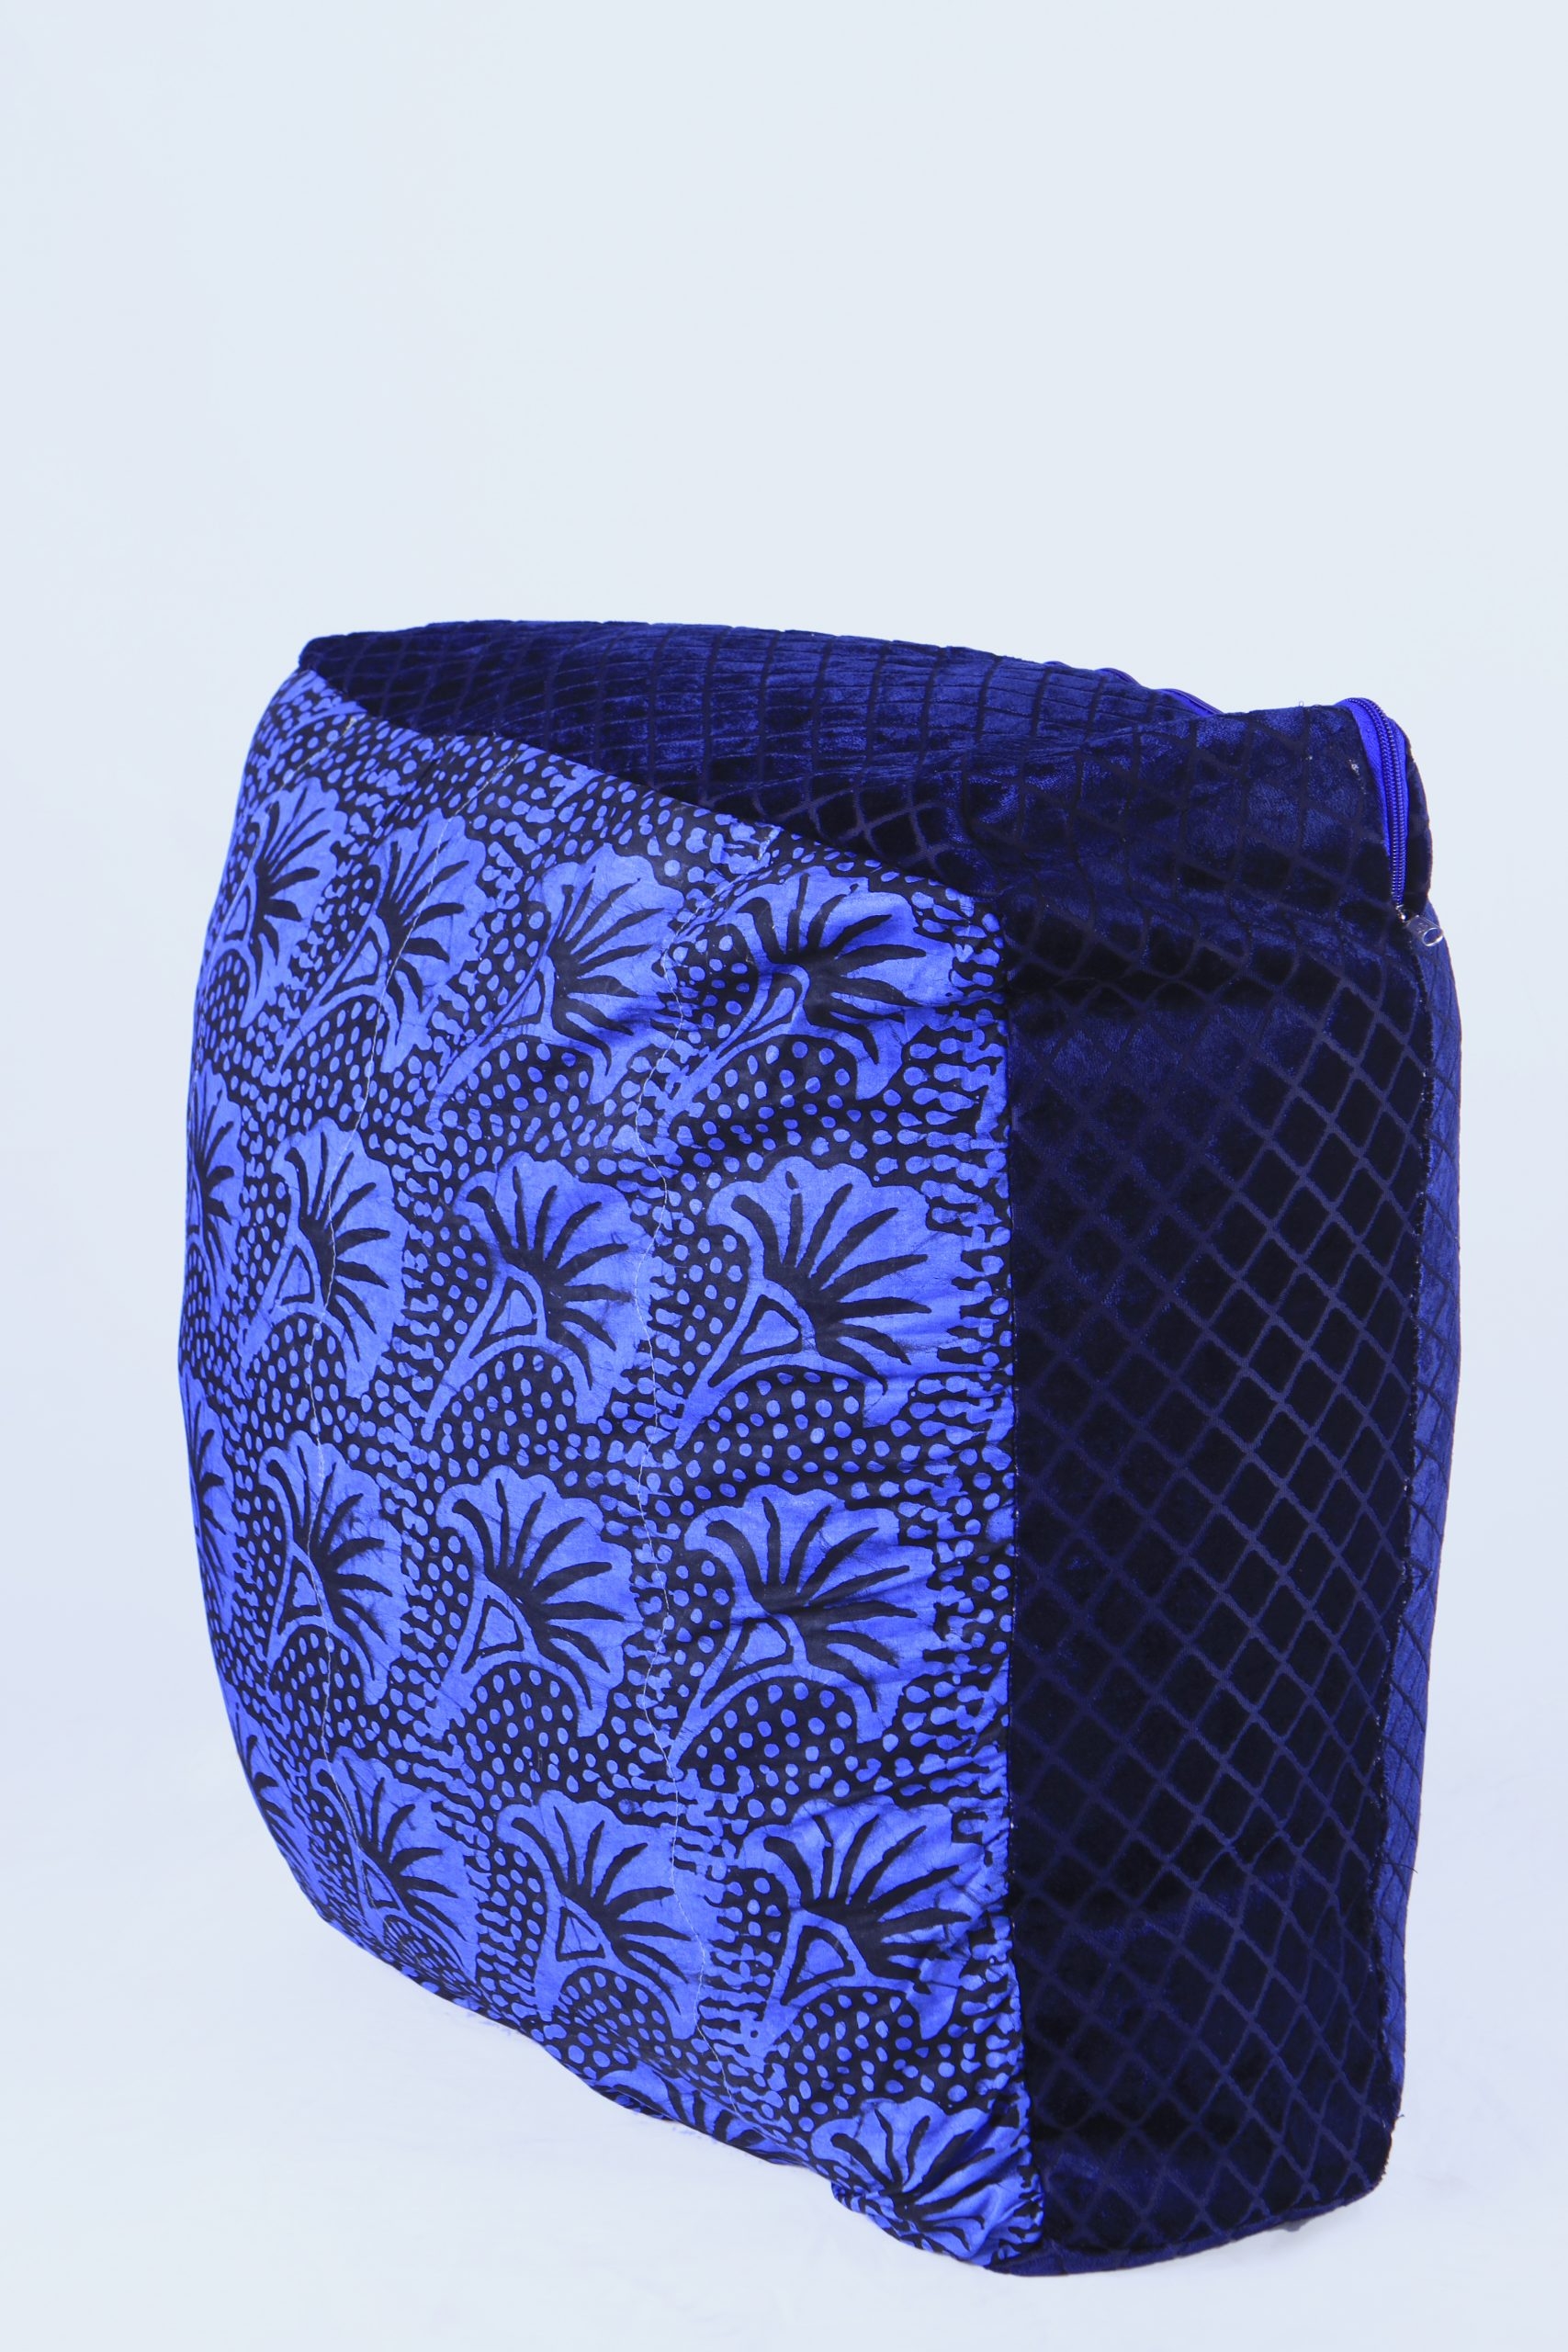 Large adire floor cushion - Royal blue